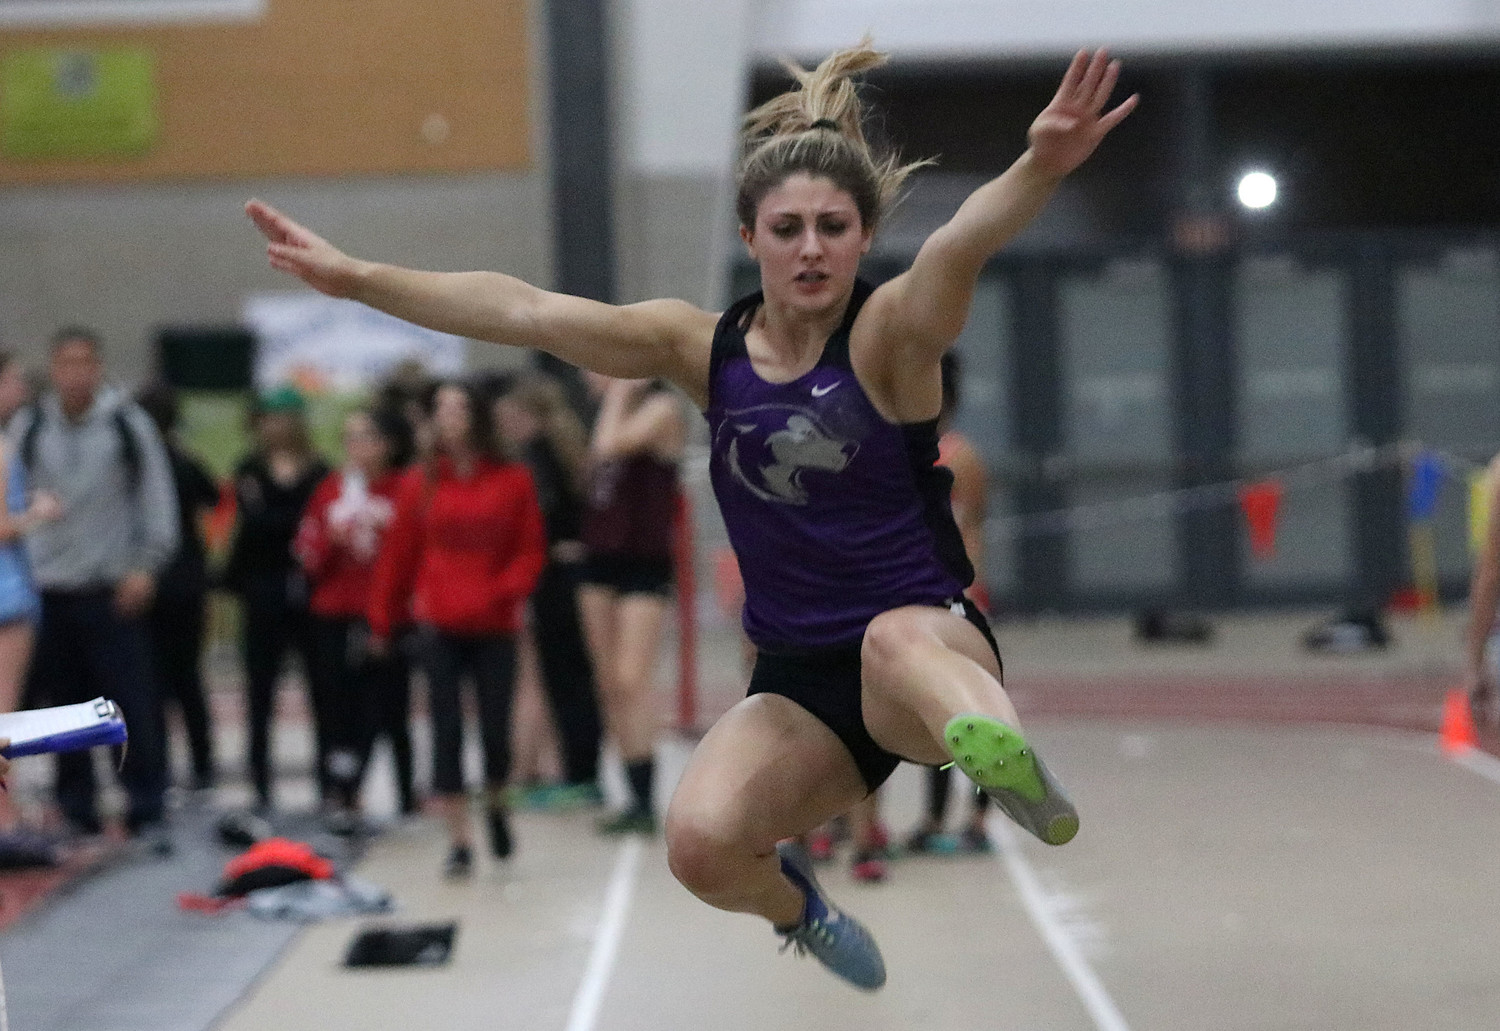 Junior Meghan Oliver leaps through the air during the long jump. She won the event with a jump of 16 feet 4 inches.